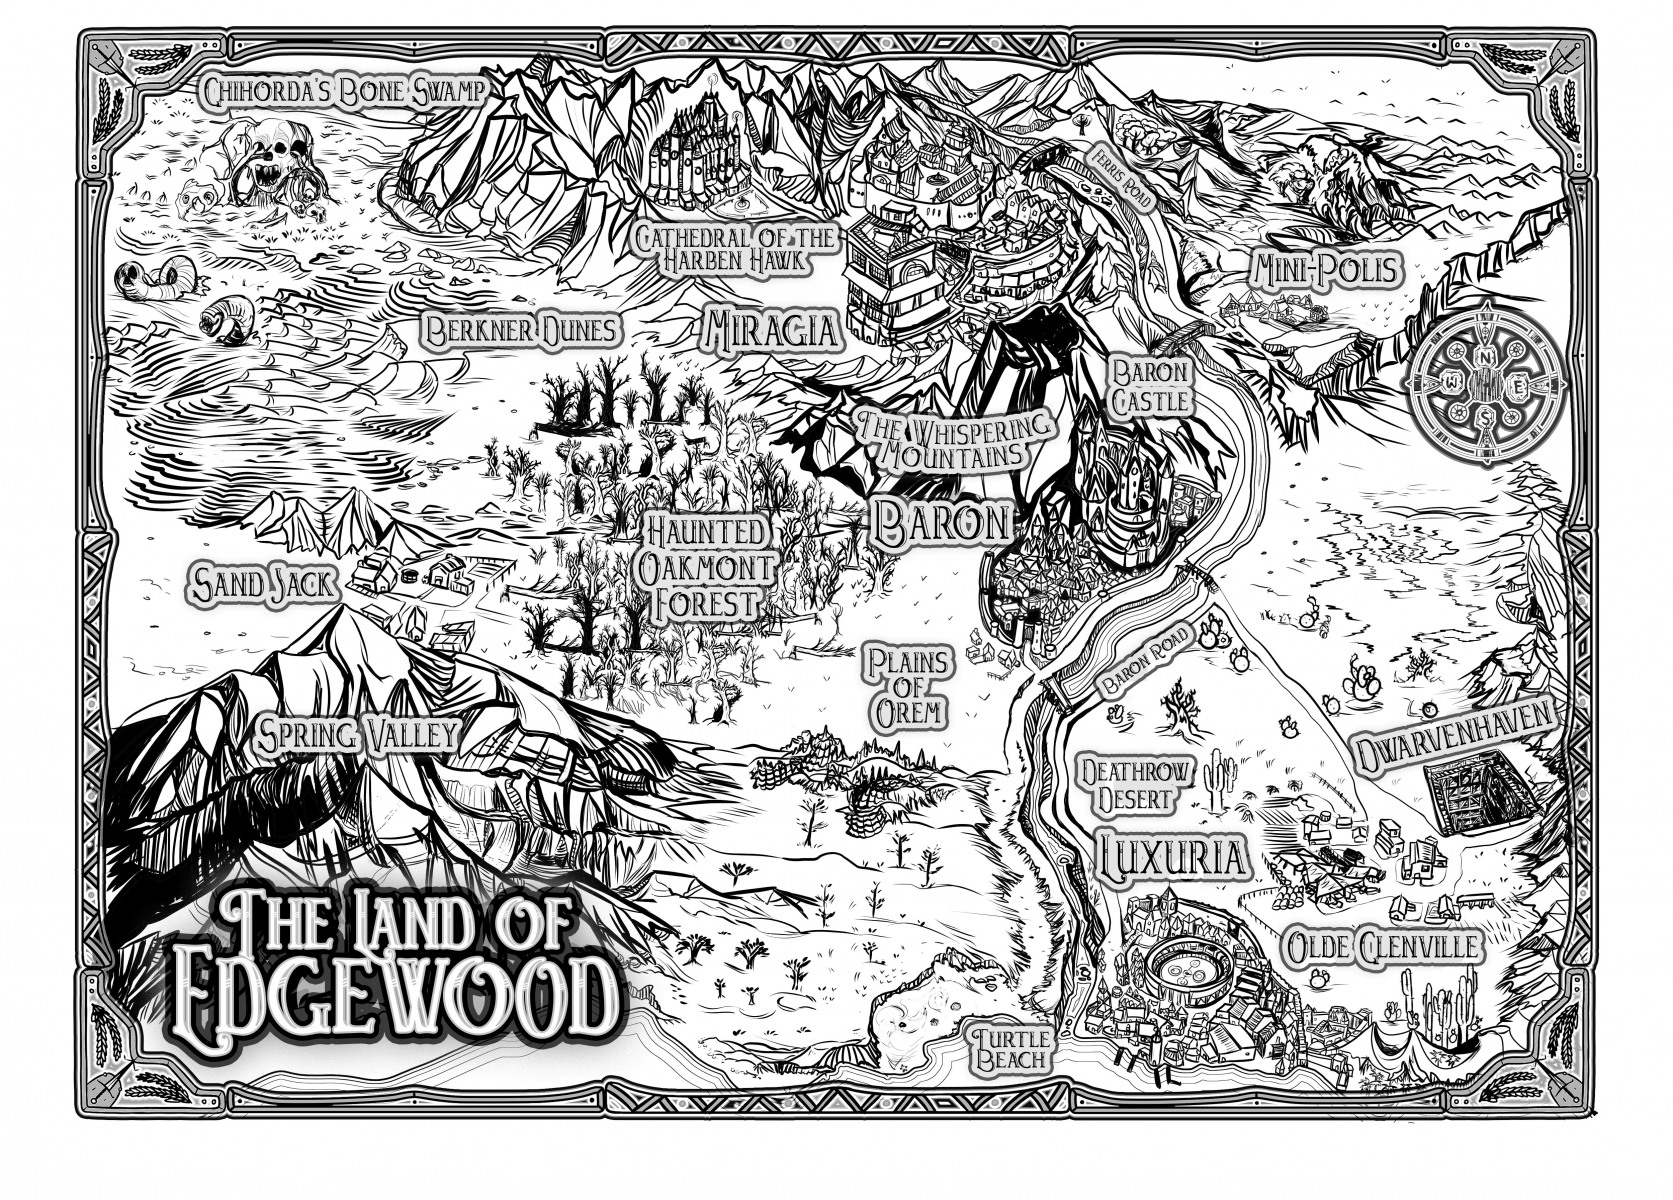 Map of the Realm of Edgewood black and white ink bw fantasy country map for RPG youtube series custom fantasy region country kingdom with unique border beautiful fantasy made up lands custom commission artwork